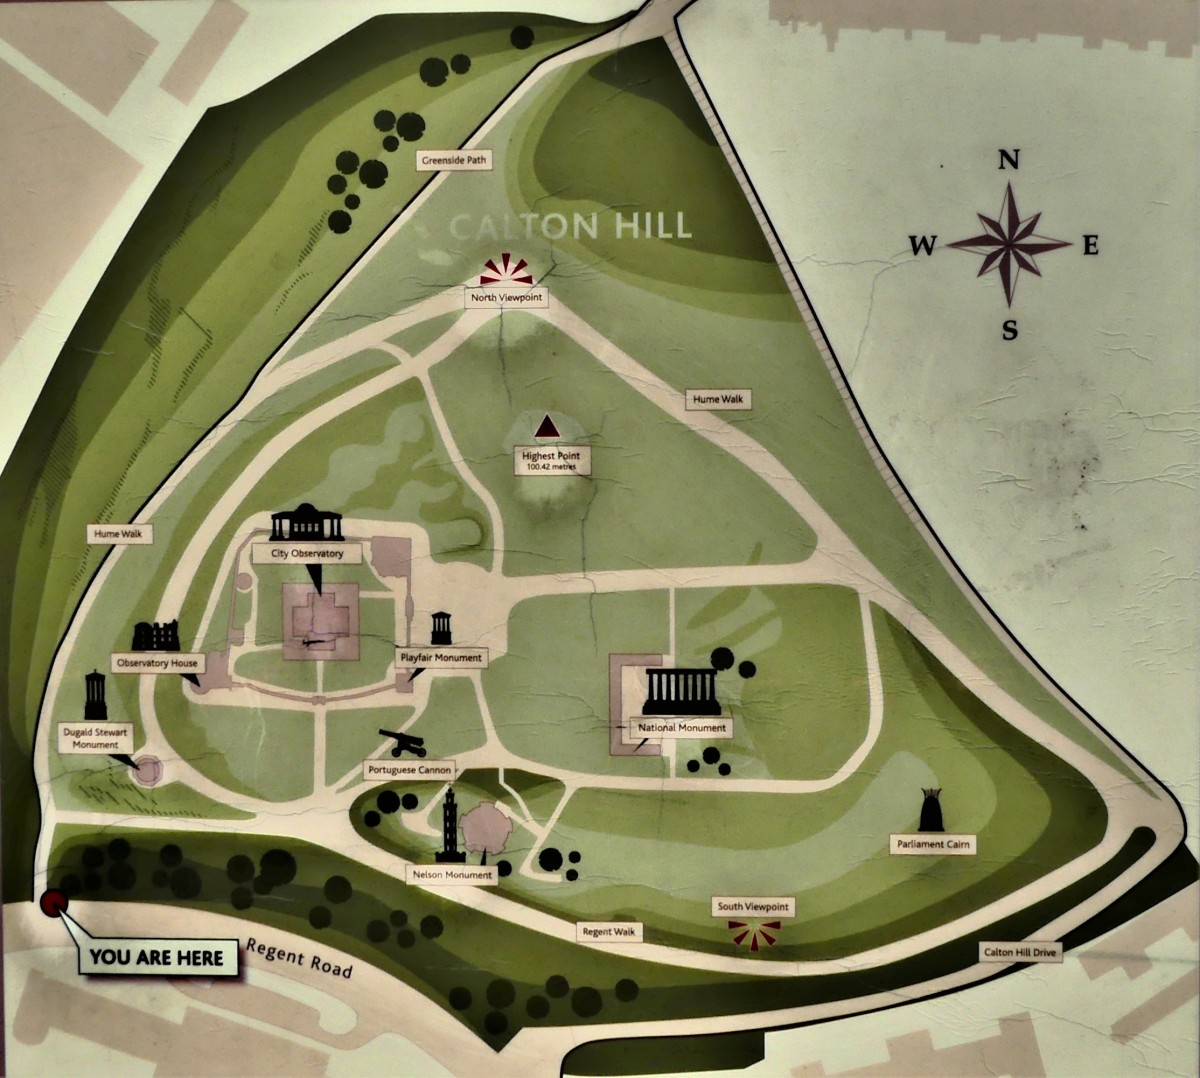 Calton Hill map.jpg